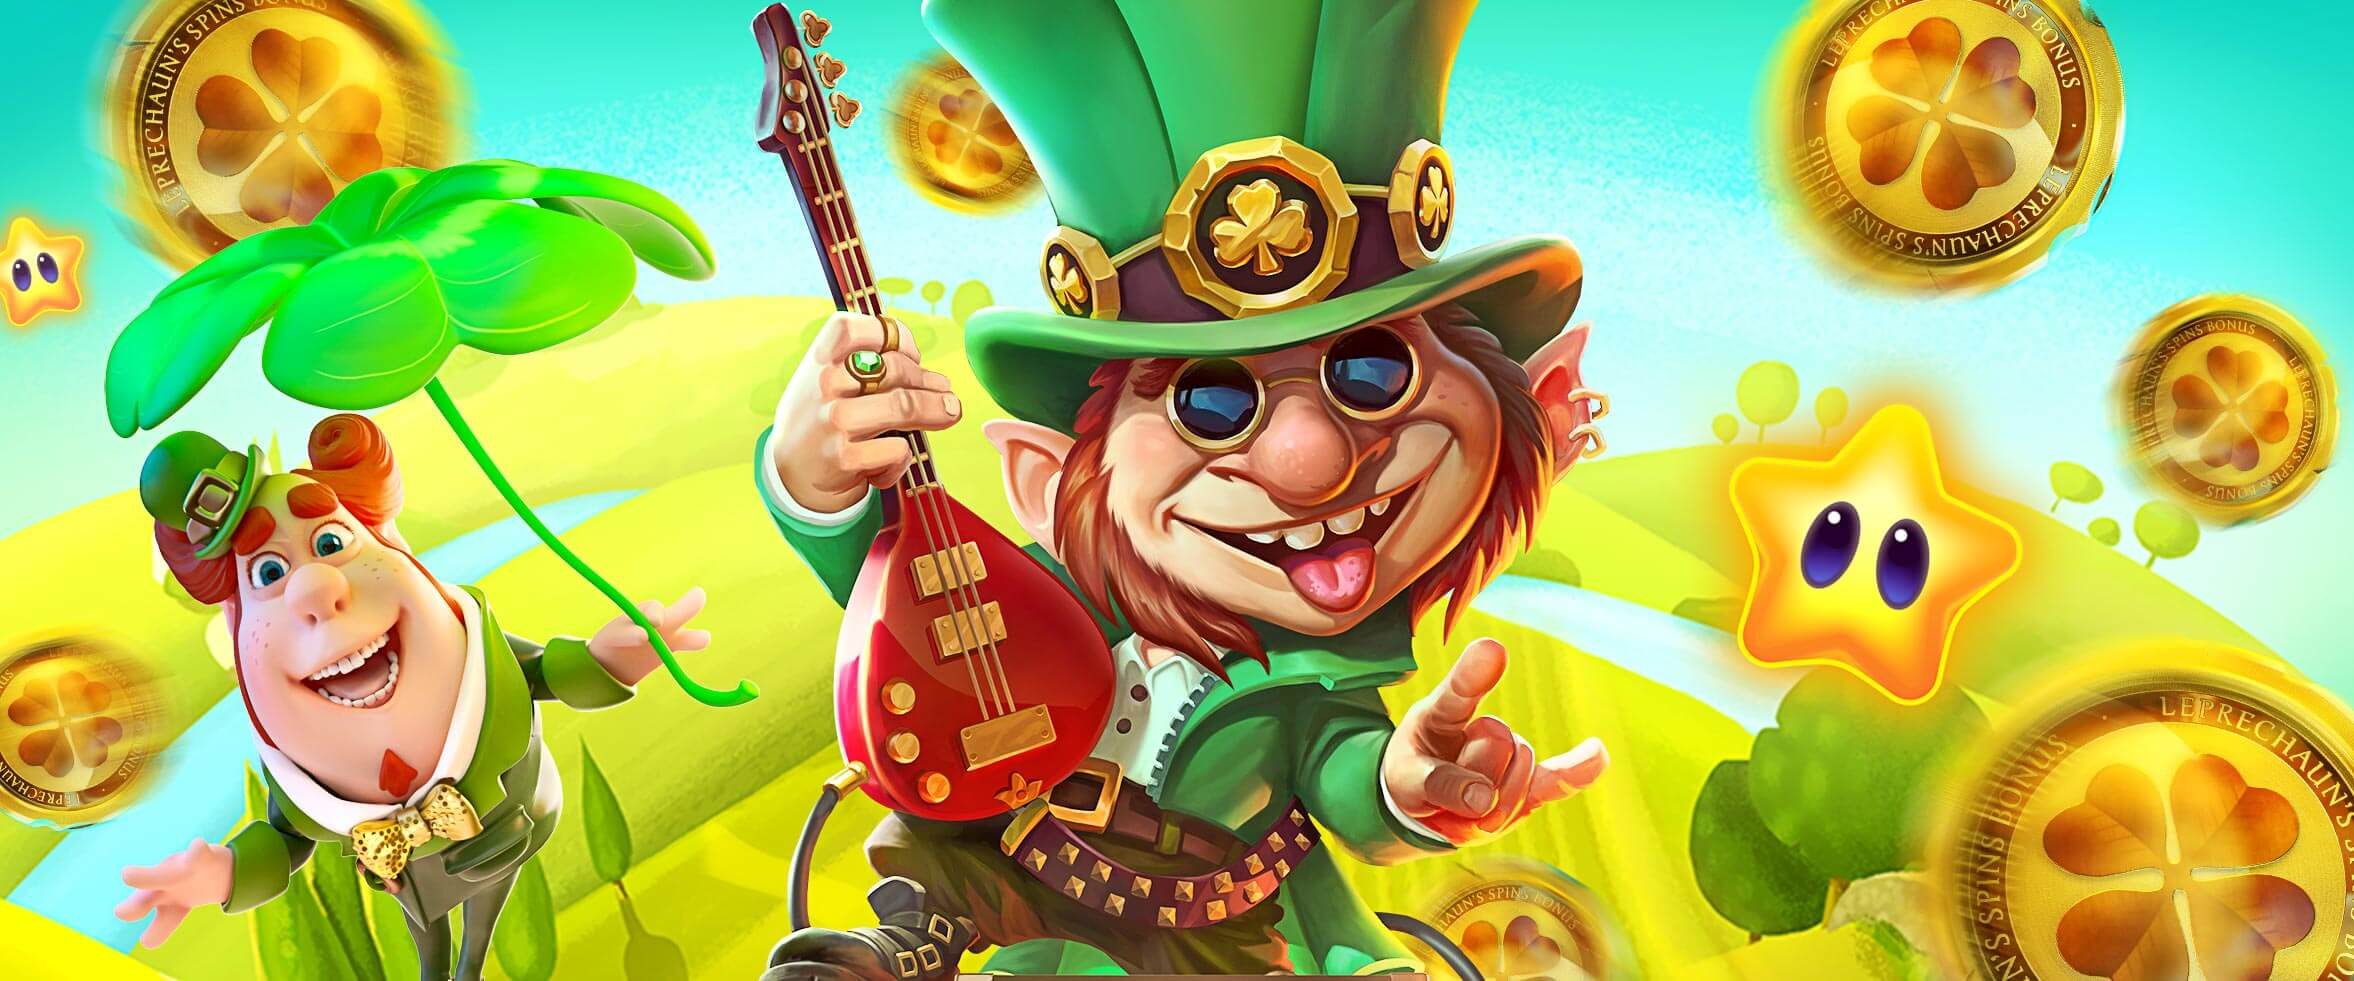 Channel the Luck of the Irish at Wildz